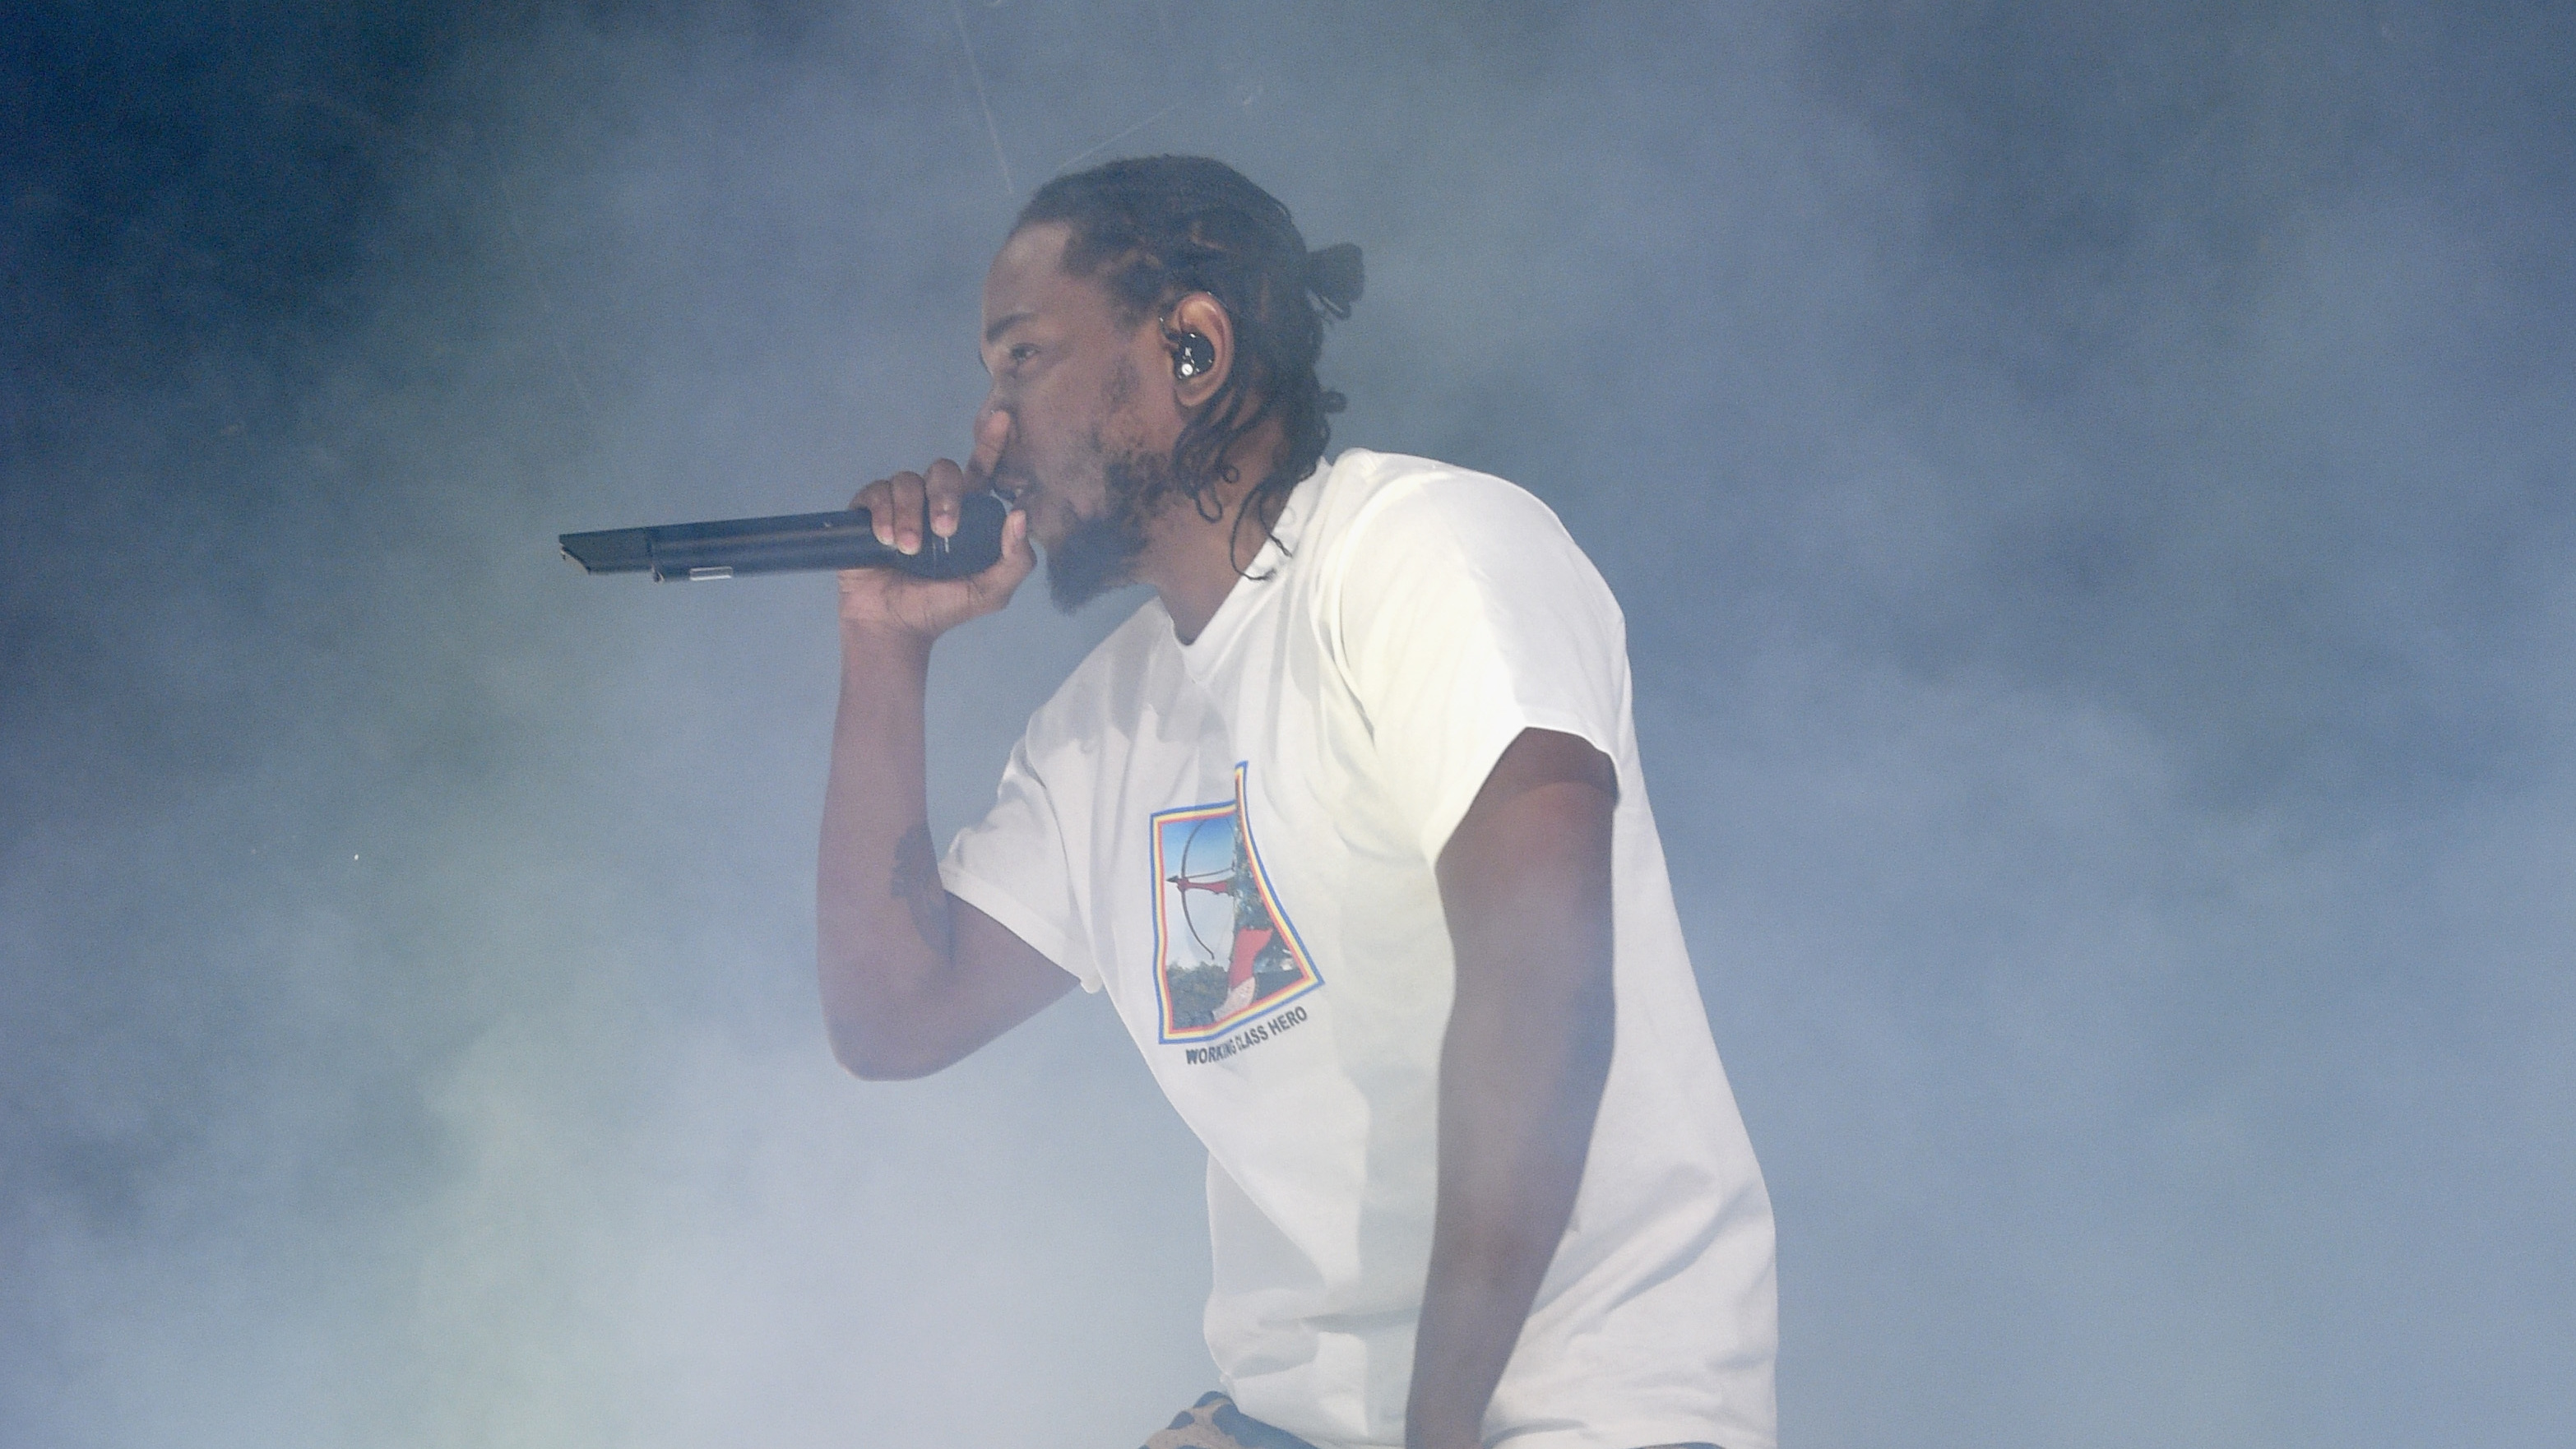 Kendrick Lamar Fires A Warning Shot With New Song 'The Heart Part 4'